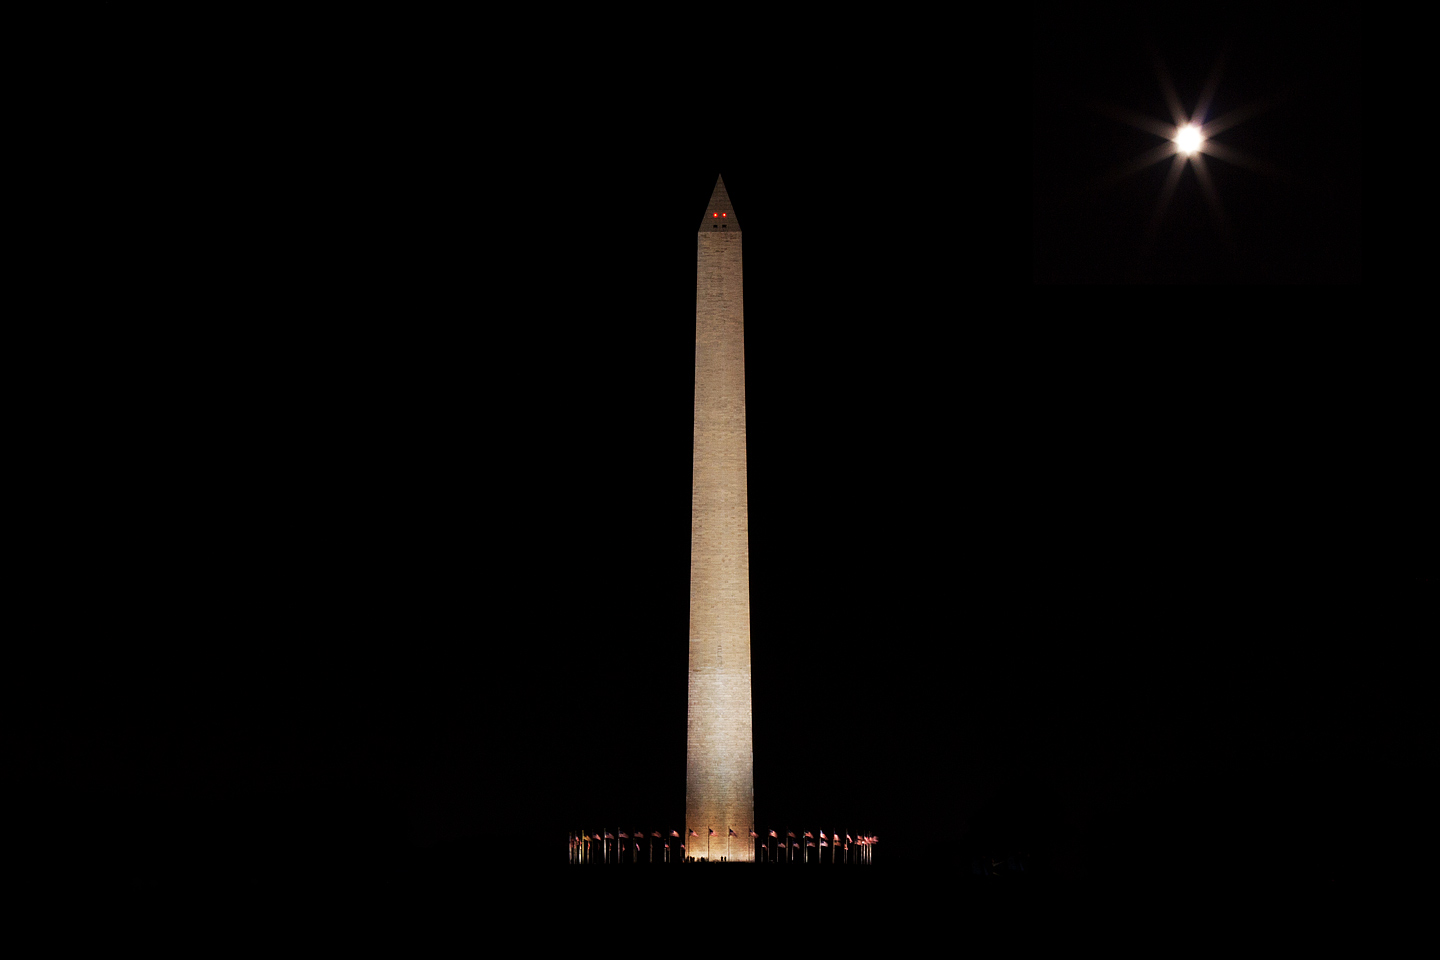 washington monument sitting below a full moon over washington dc photographed by Jacob Rosenfeld